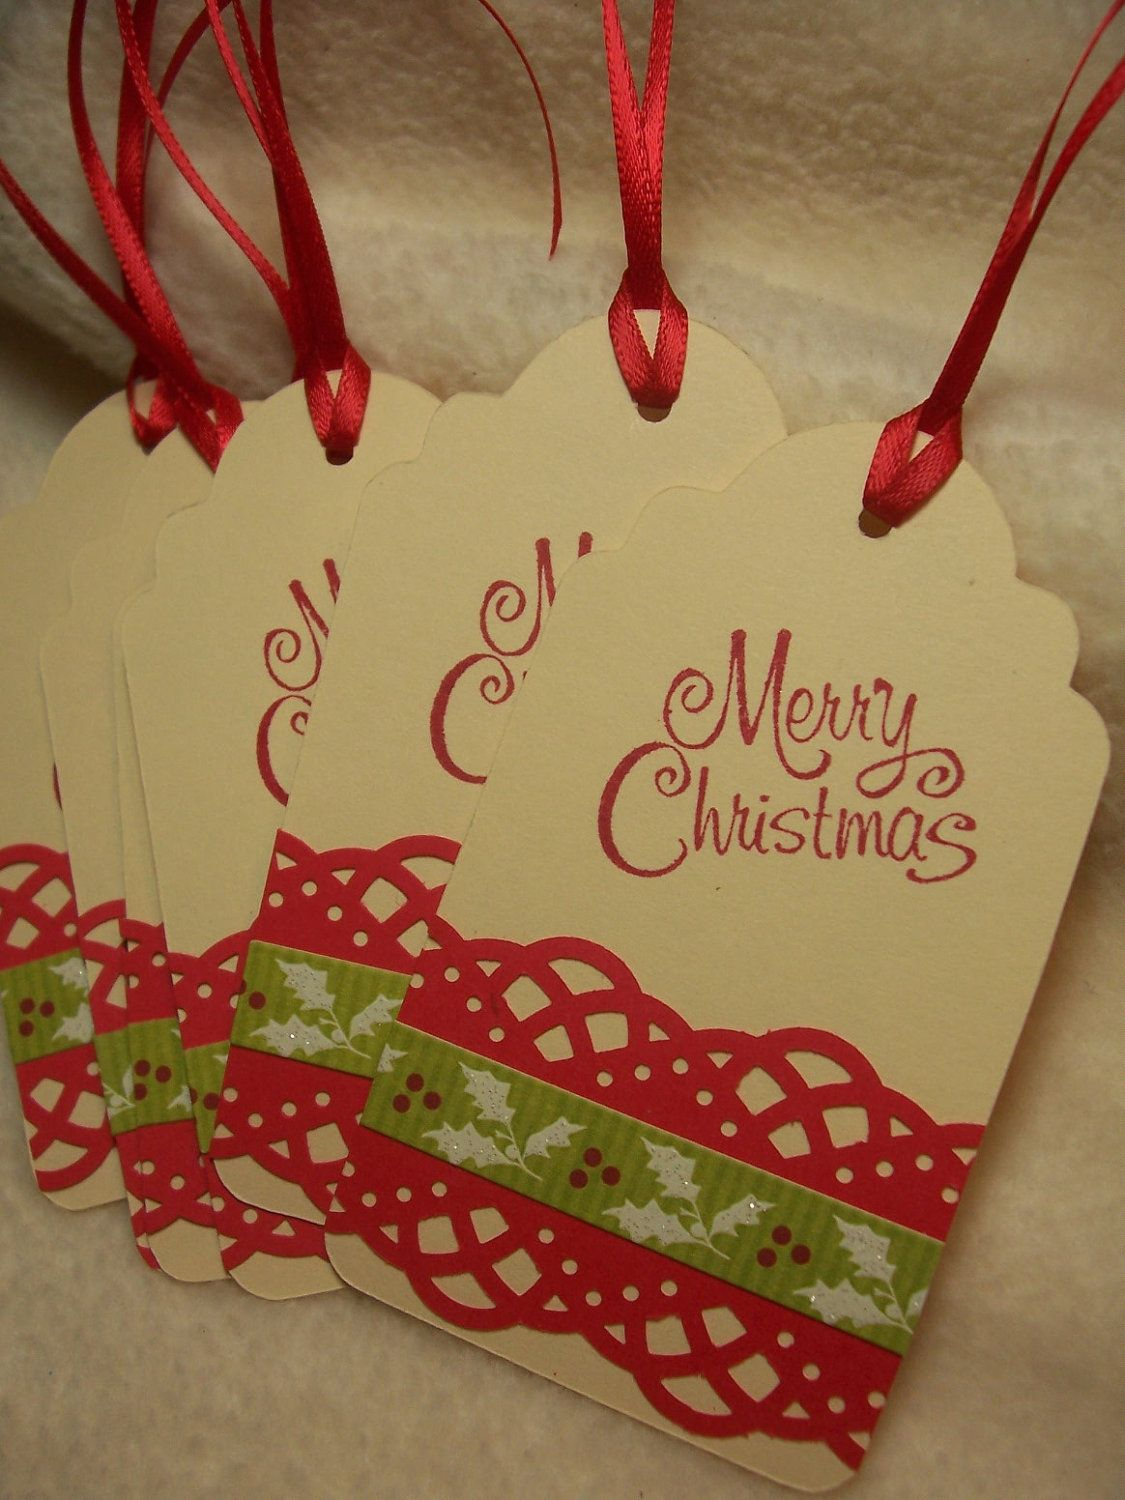 Christmas Gift Tags Pinterest.Scrapbook Christmas Gift Tags Bing Images Christmas